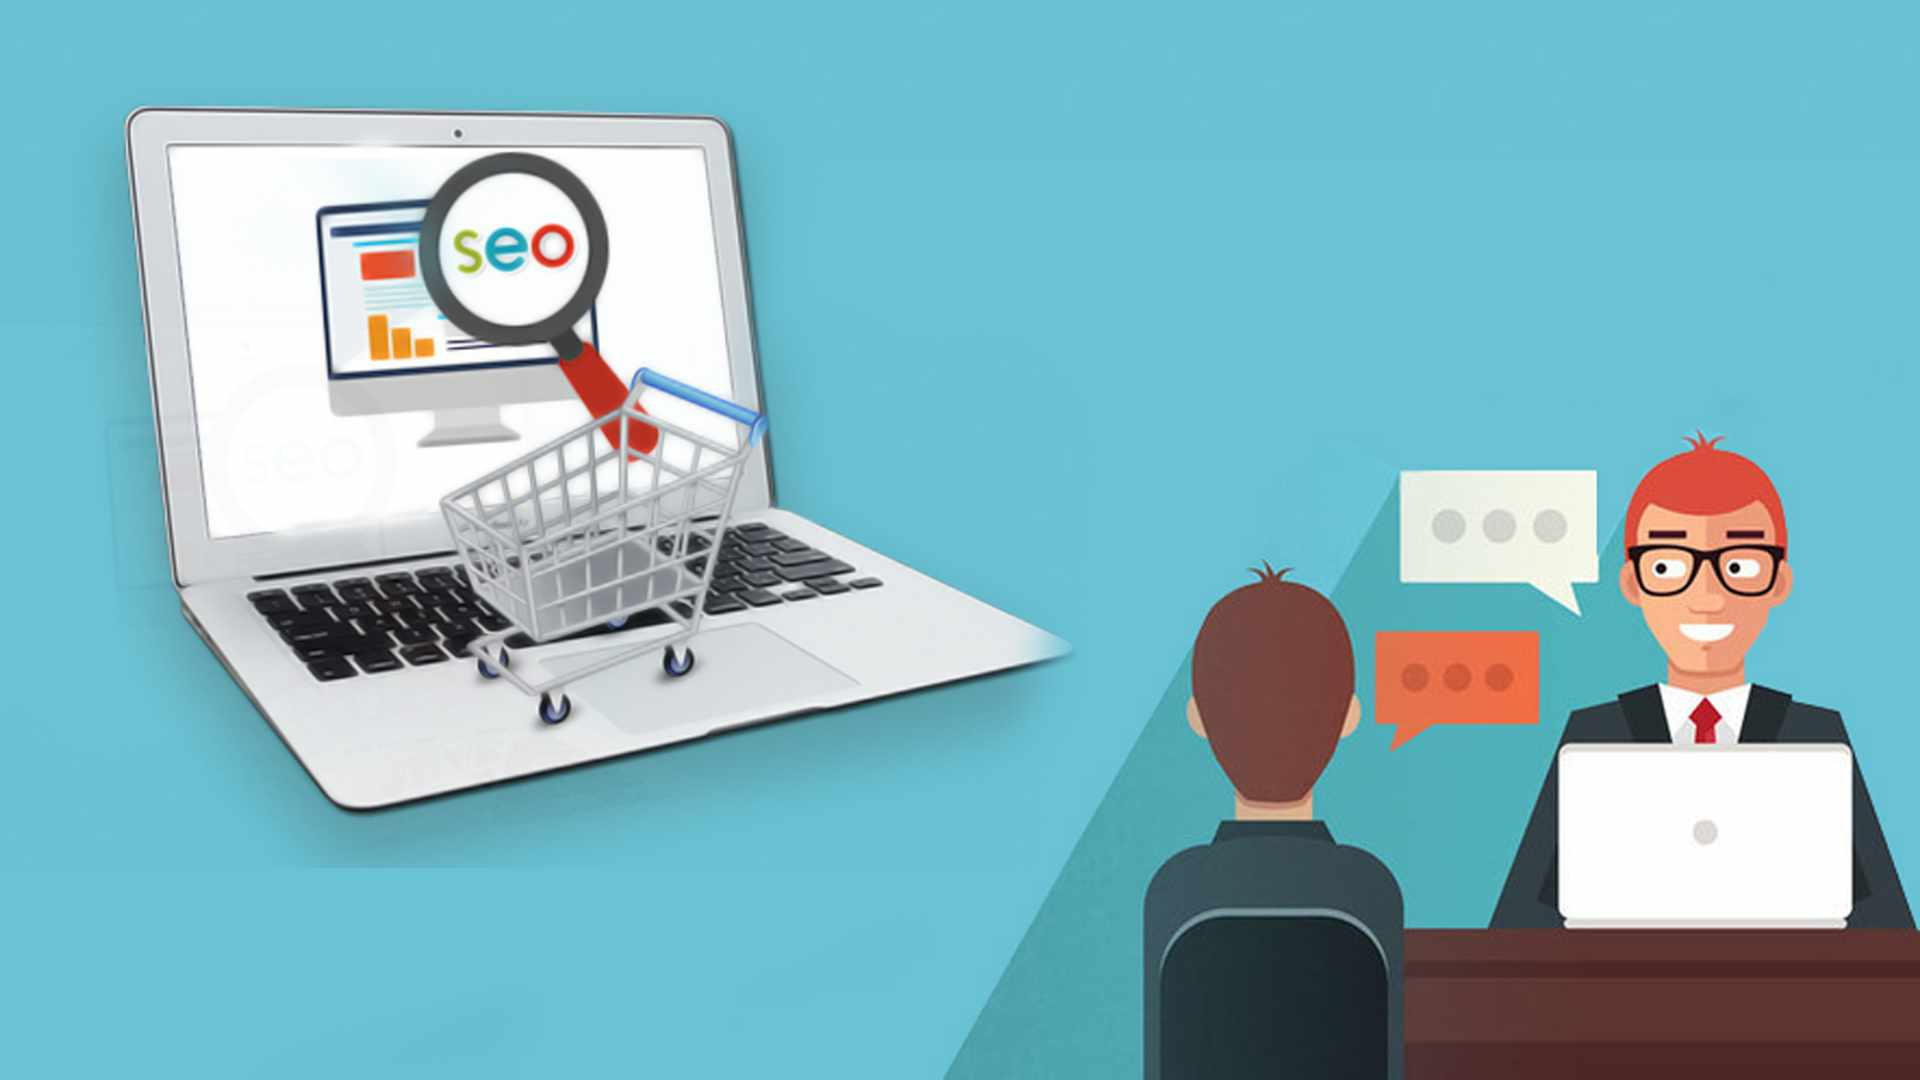 Skills to Look for in an ECommerce SEO Expert